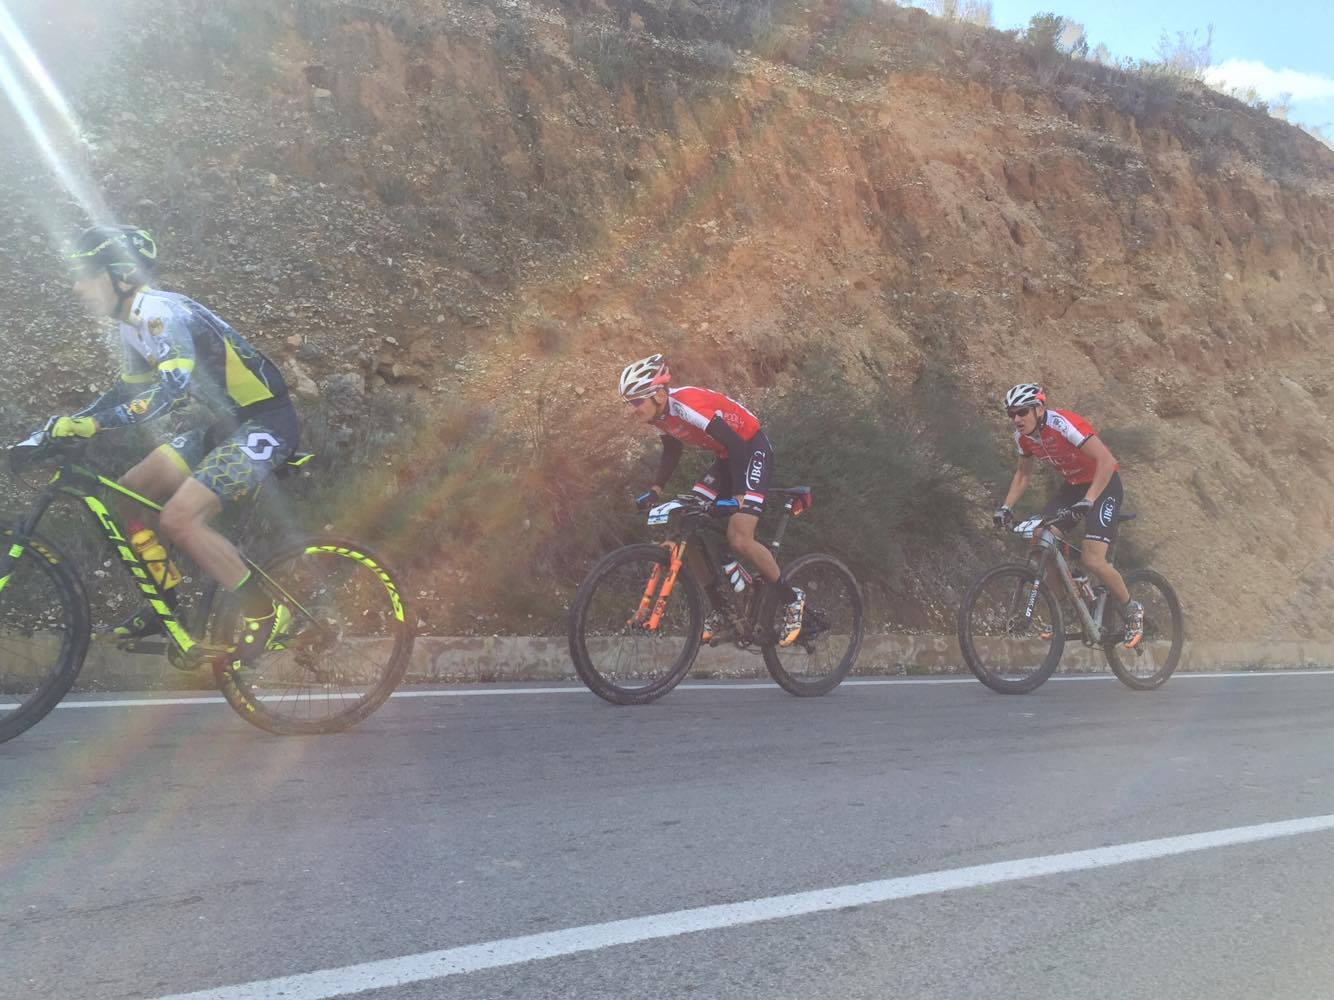 JBG2 Team – Costa Blanca Bike Race, Etap I